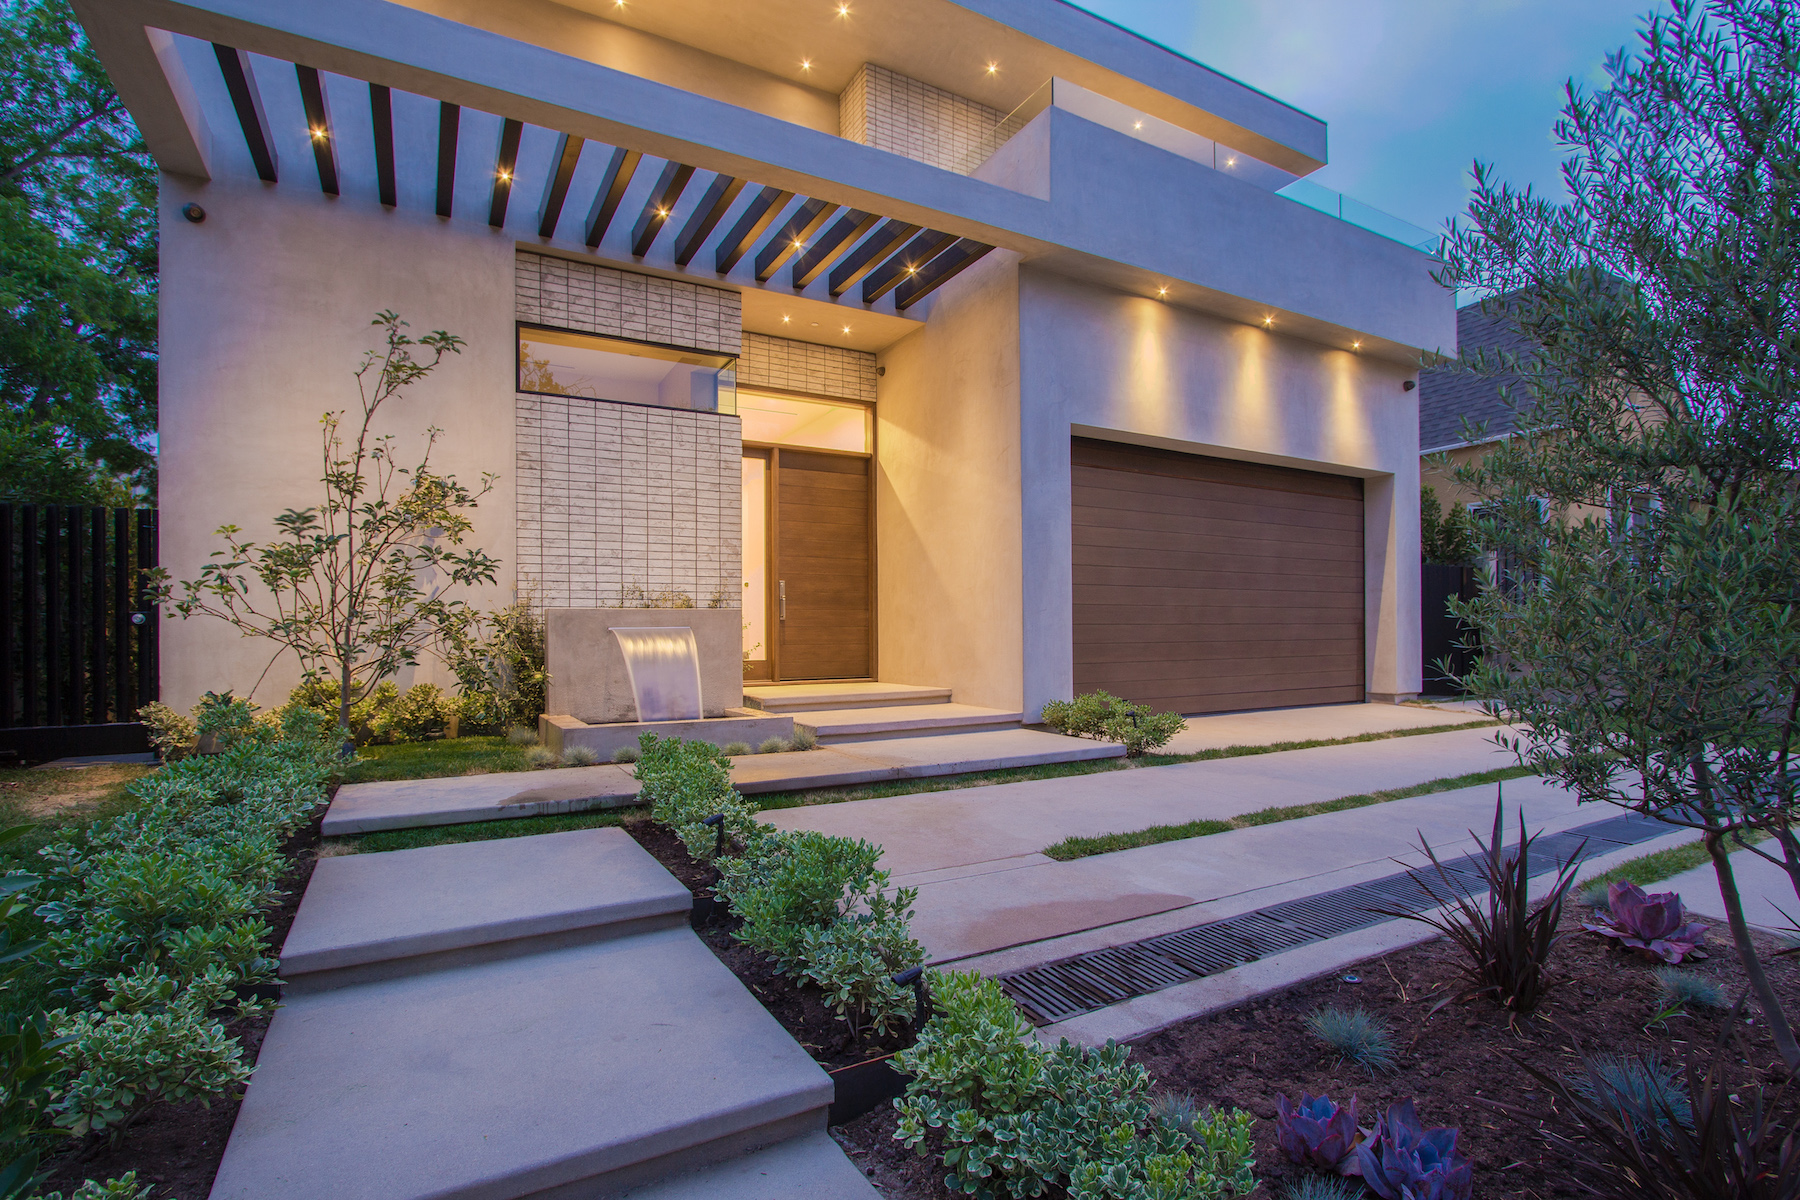 WestHollywood_Modern_1b_sm